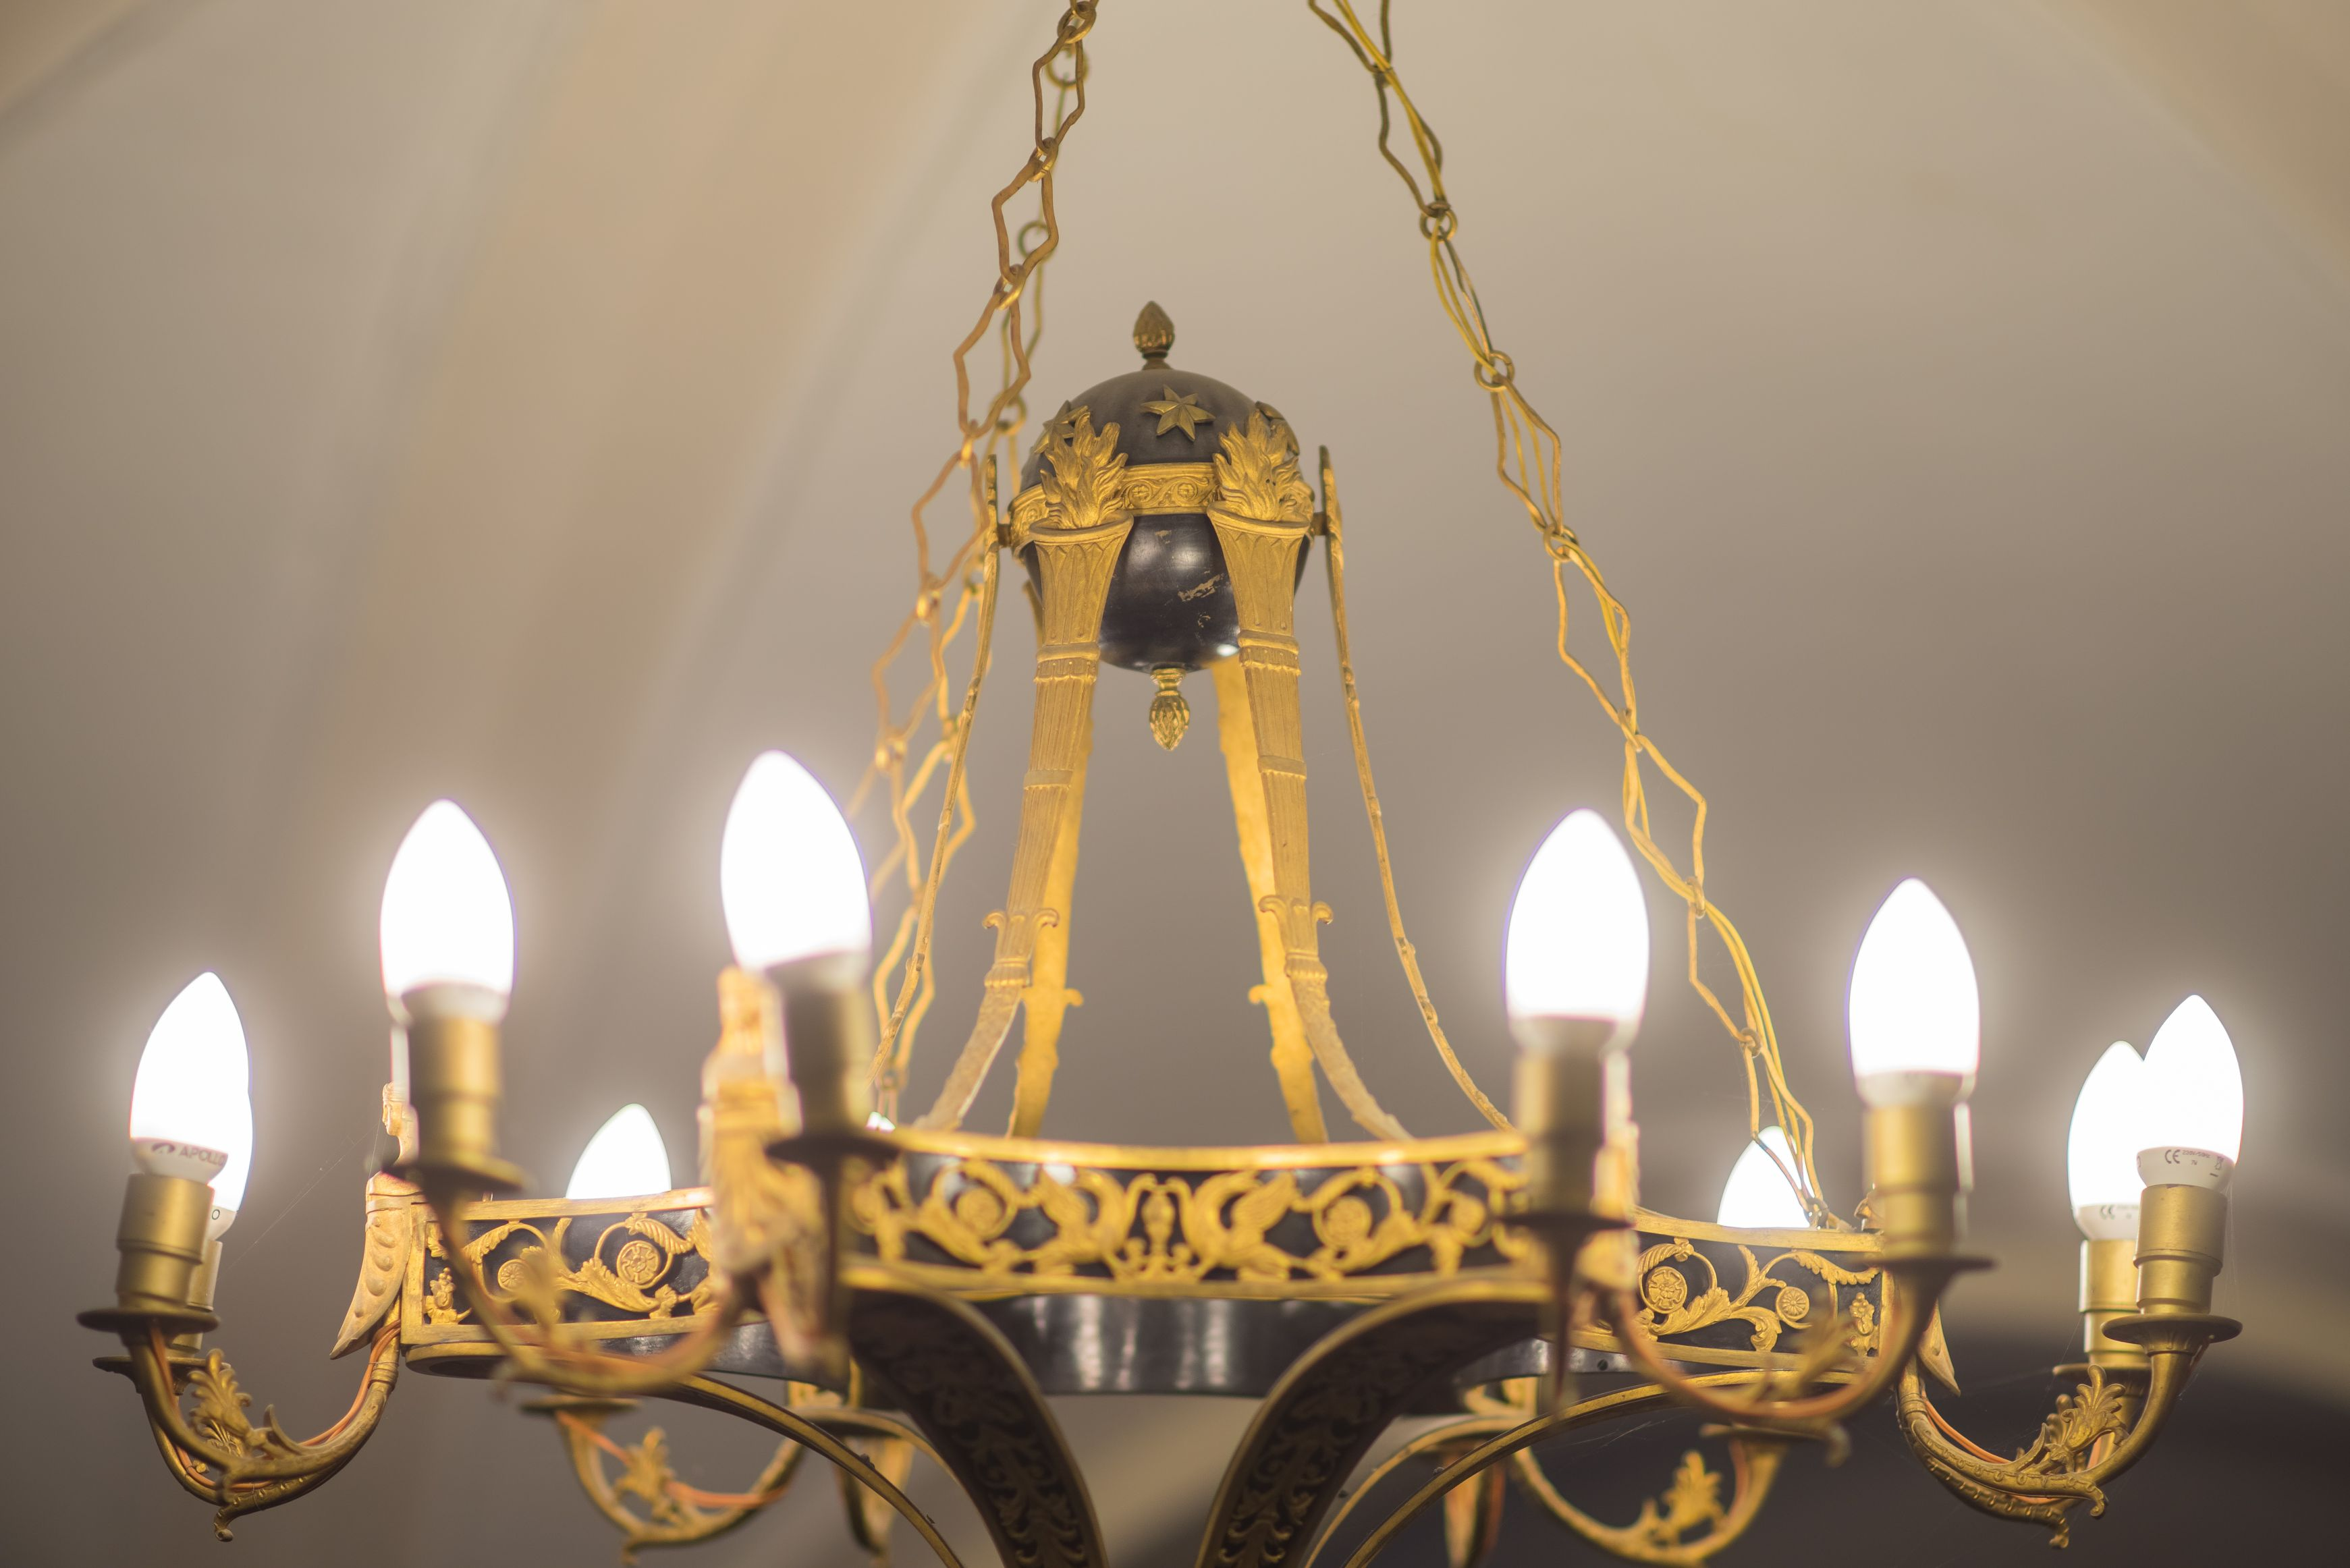 Fragment of chandelier, 1800–1849, Archdiocese of Vilnius. Photo by Povilas Jarmala, 2017